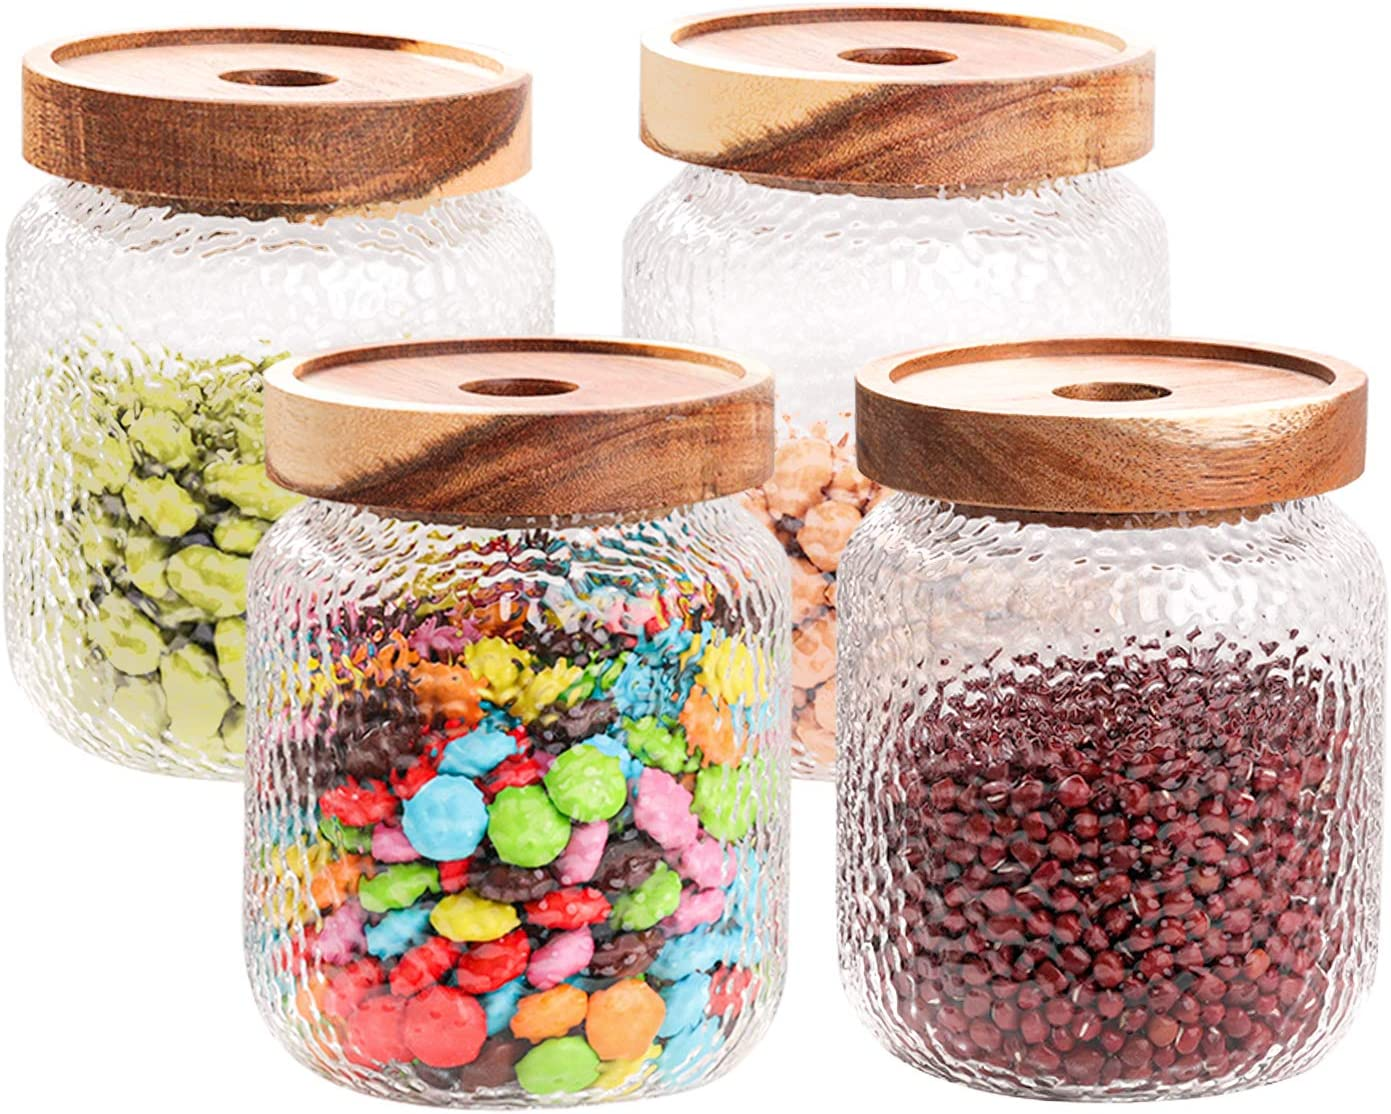 SMARTAKE Glass Jar Sets, 4 Pack of 18oz, Wide Mouth Food Storage Jar with Wood Lid, Leakproof Clear Glass Storage Container for Food, Coffee Bean, Flour, Candy, Snacks and More